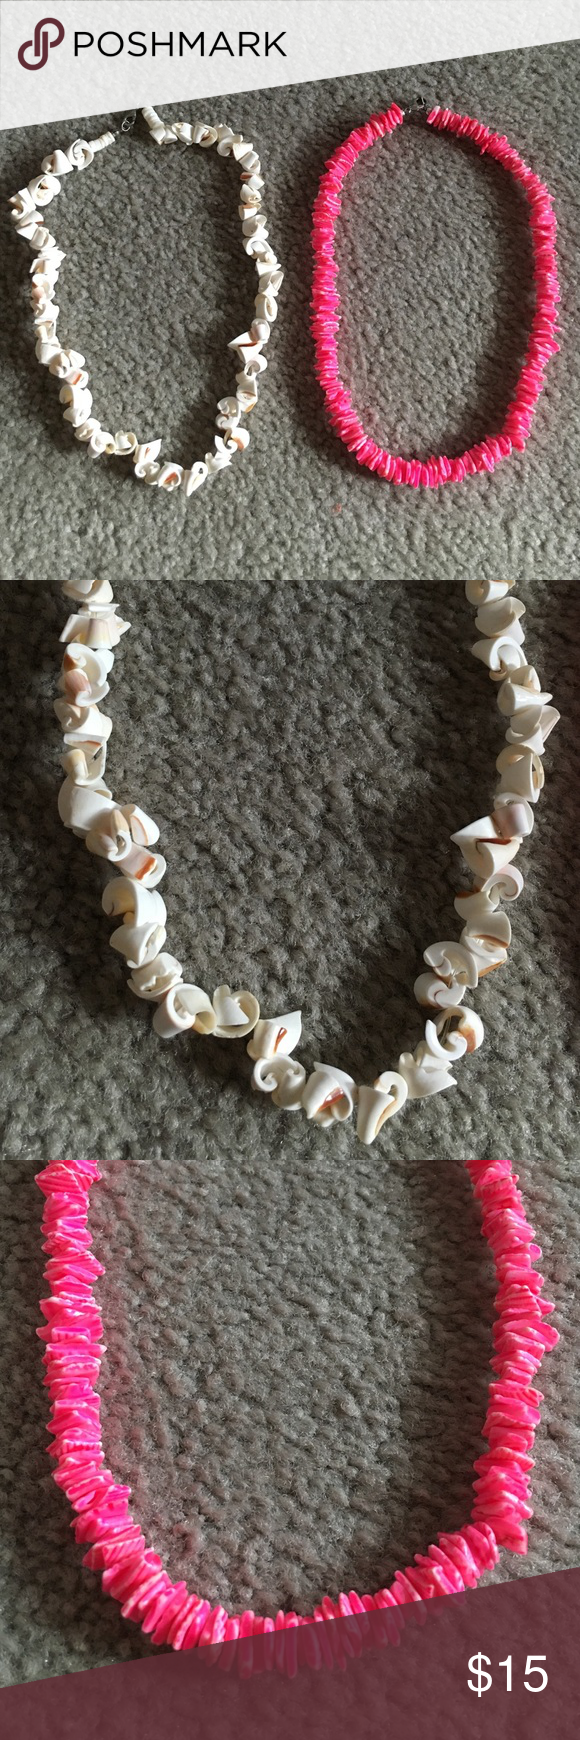 Shell Necklaces New. Never worn. Not UO just for exposure Urban Outfitters Jewelry Necklaces